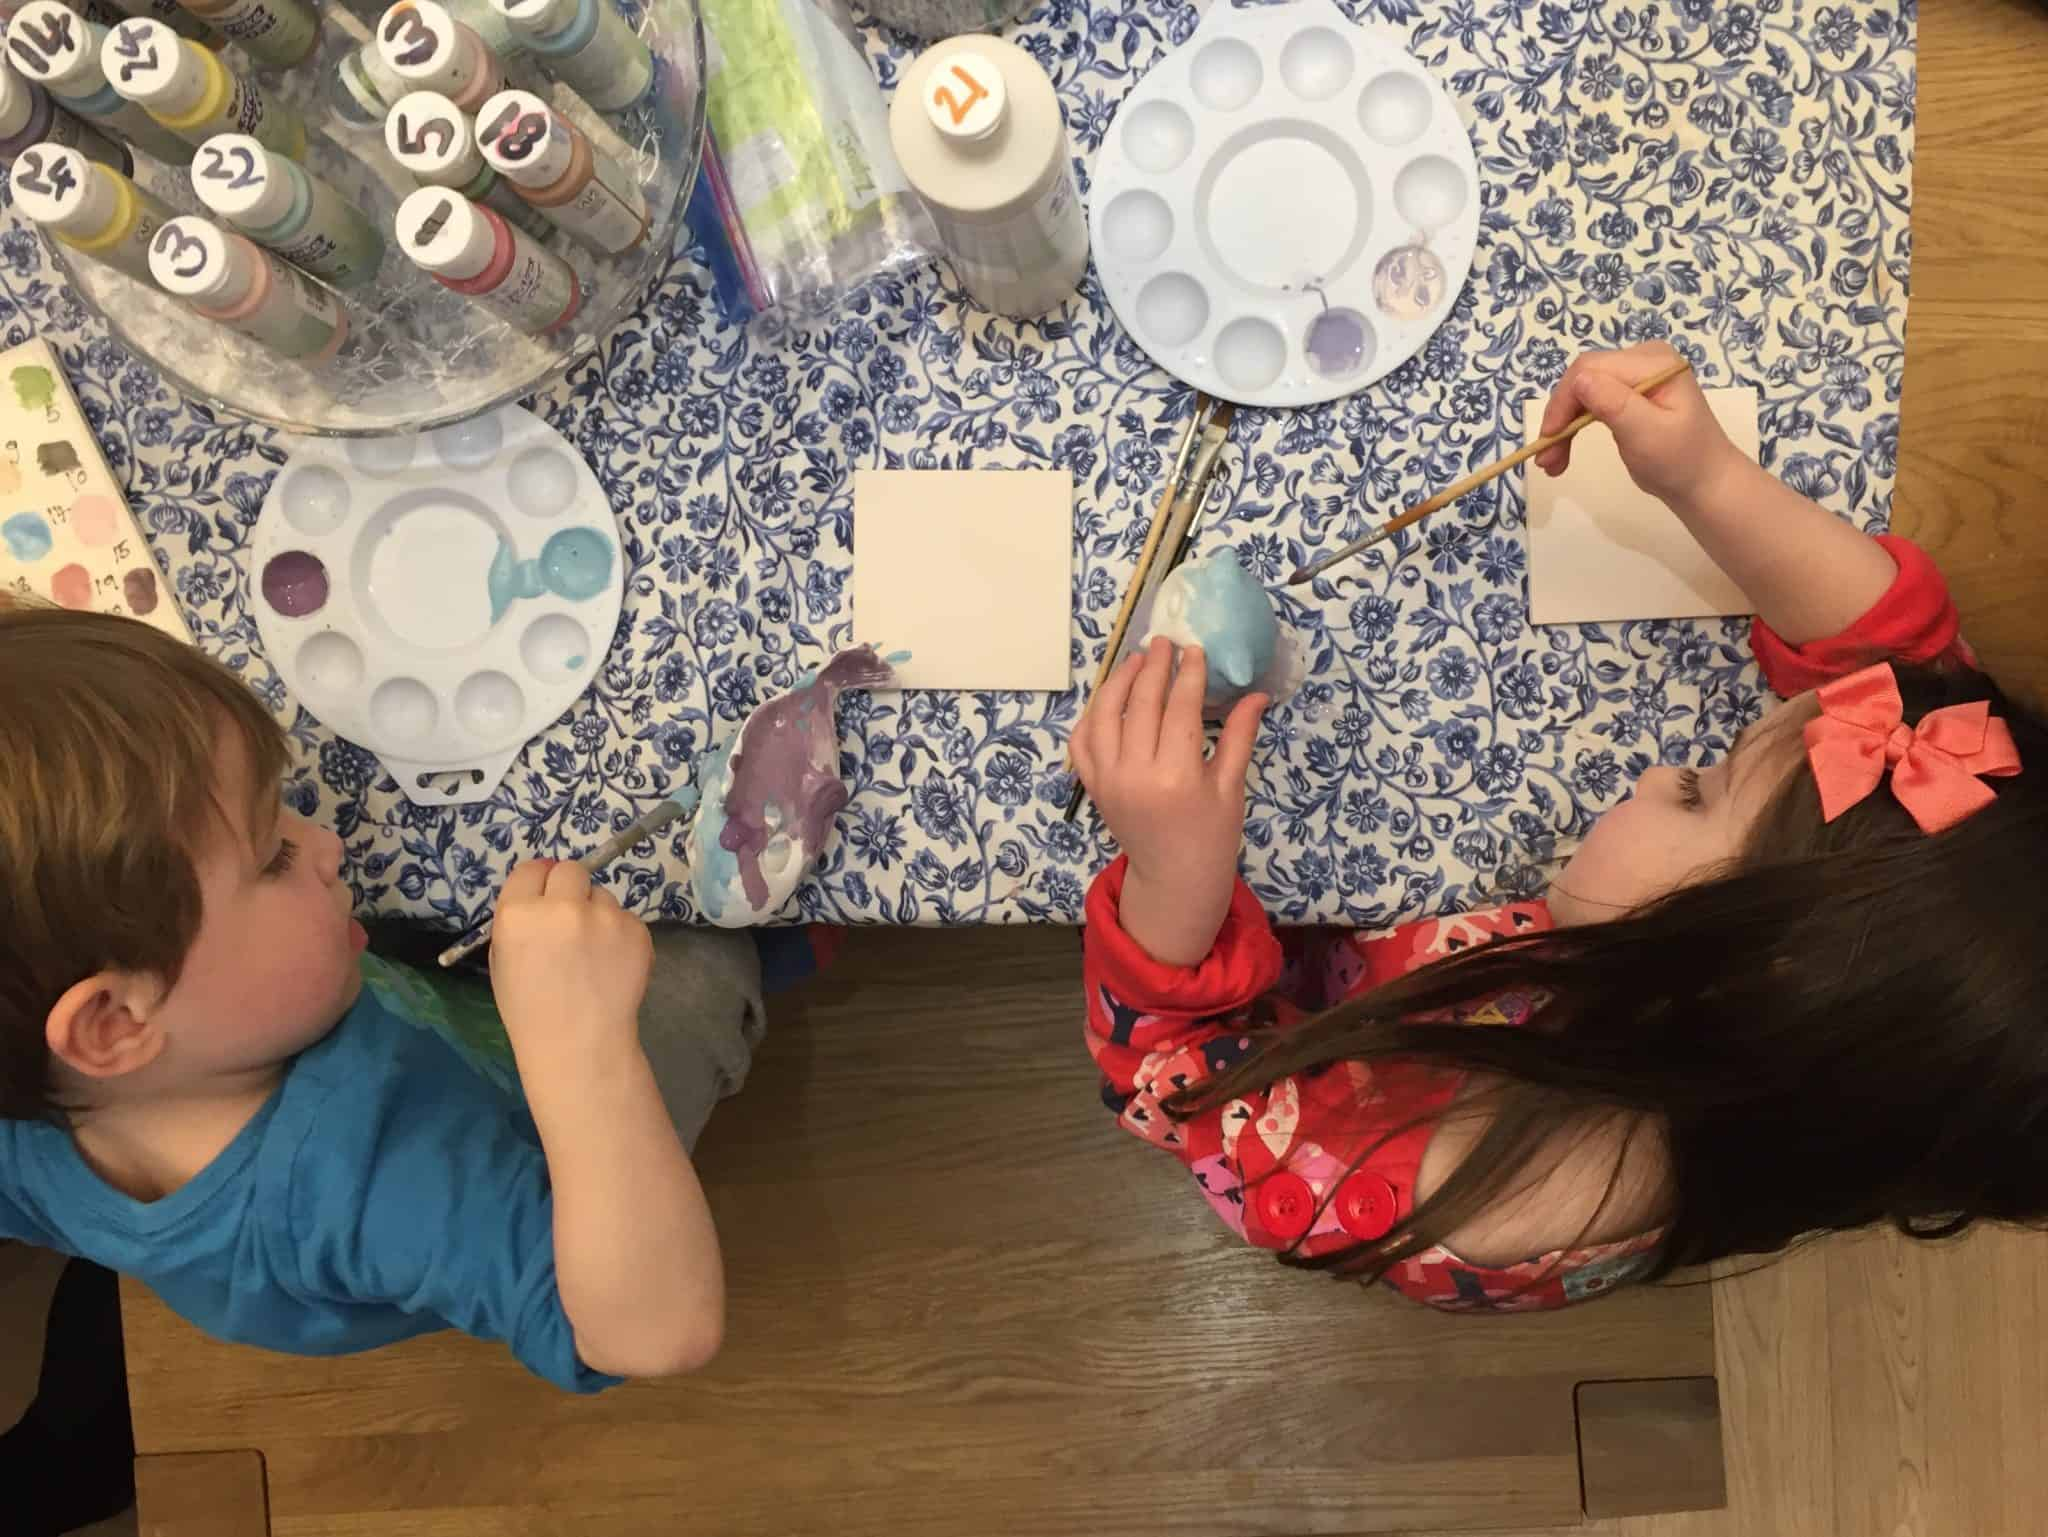 Painting Pottery at Kilning Me Softly